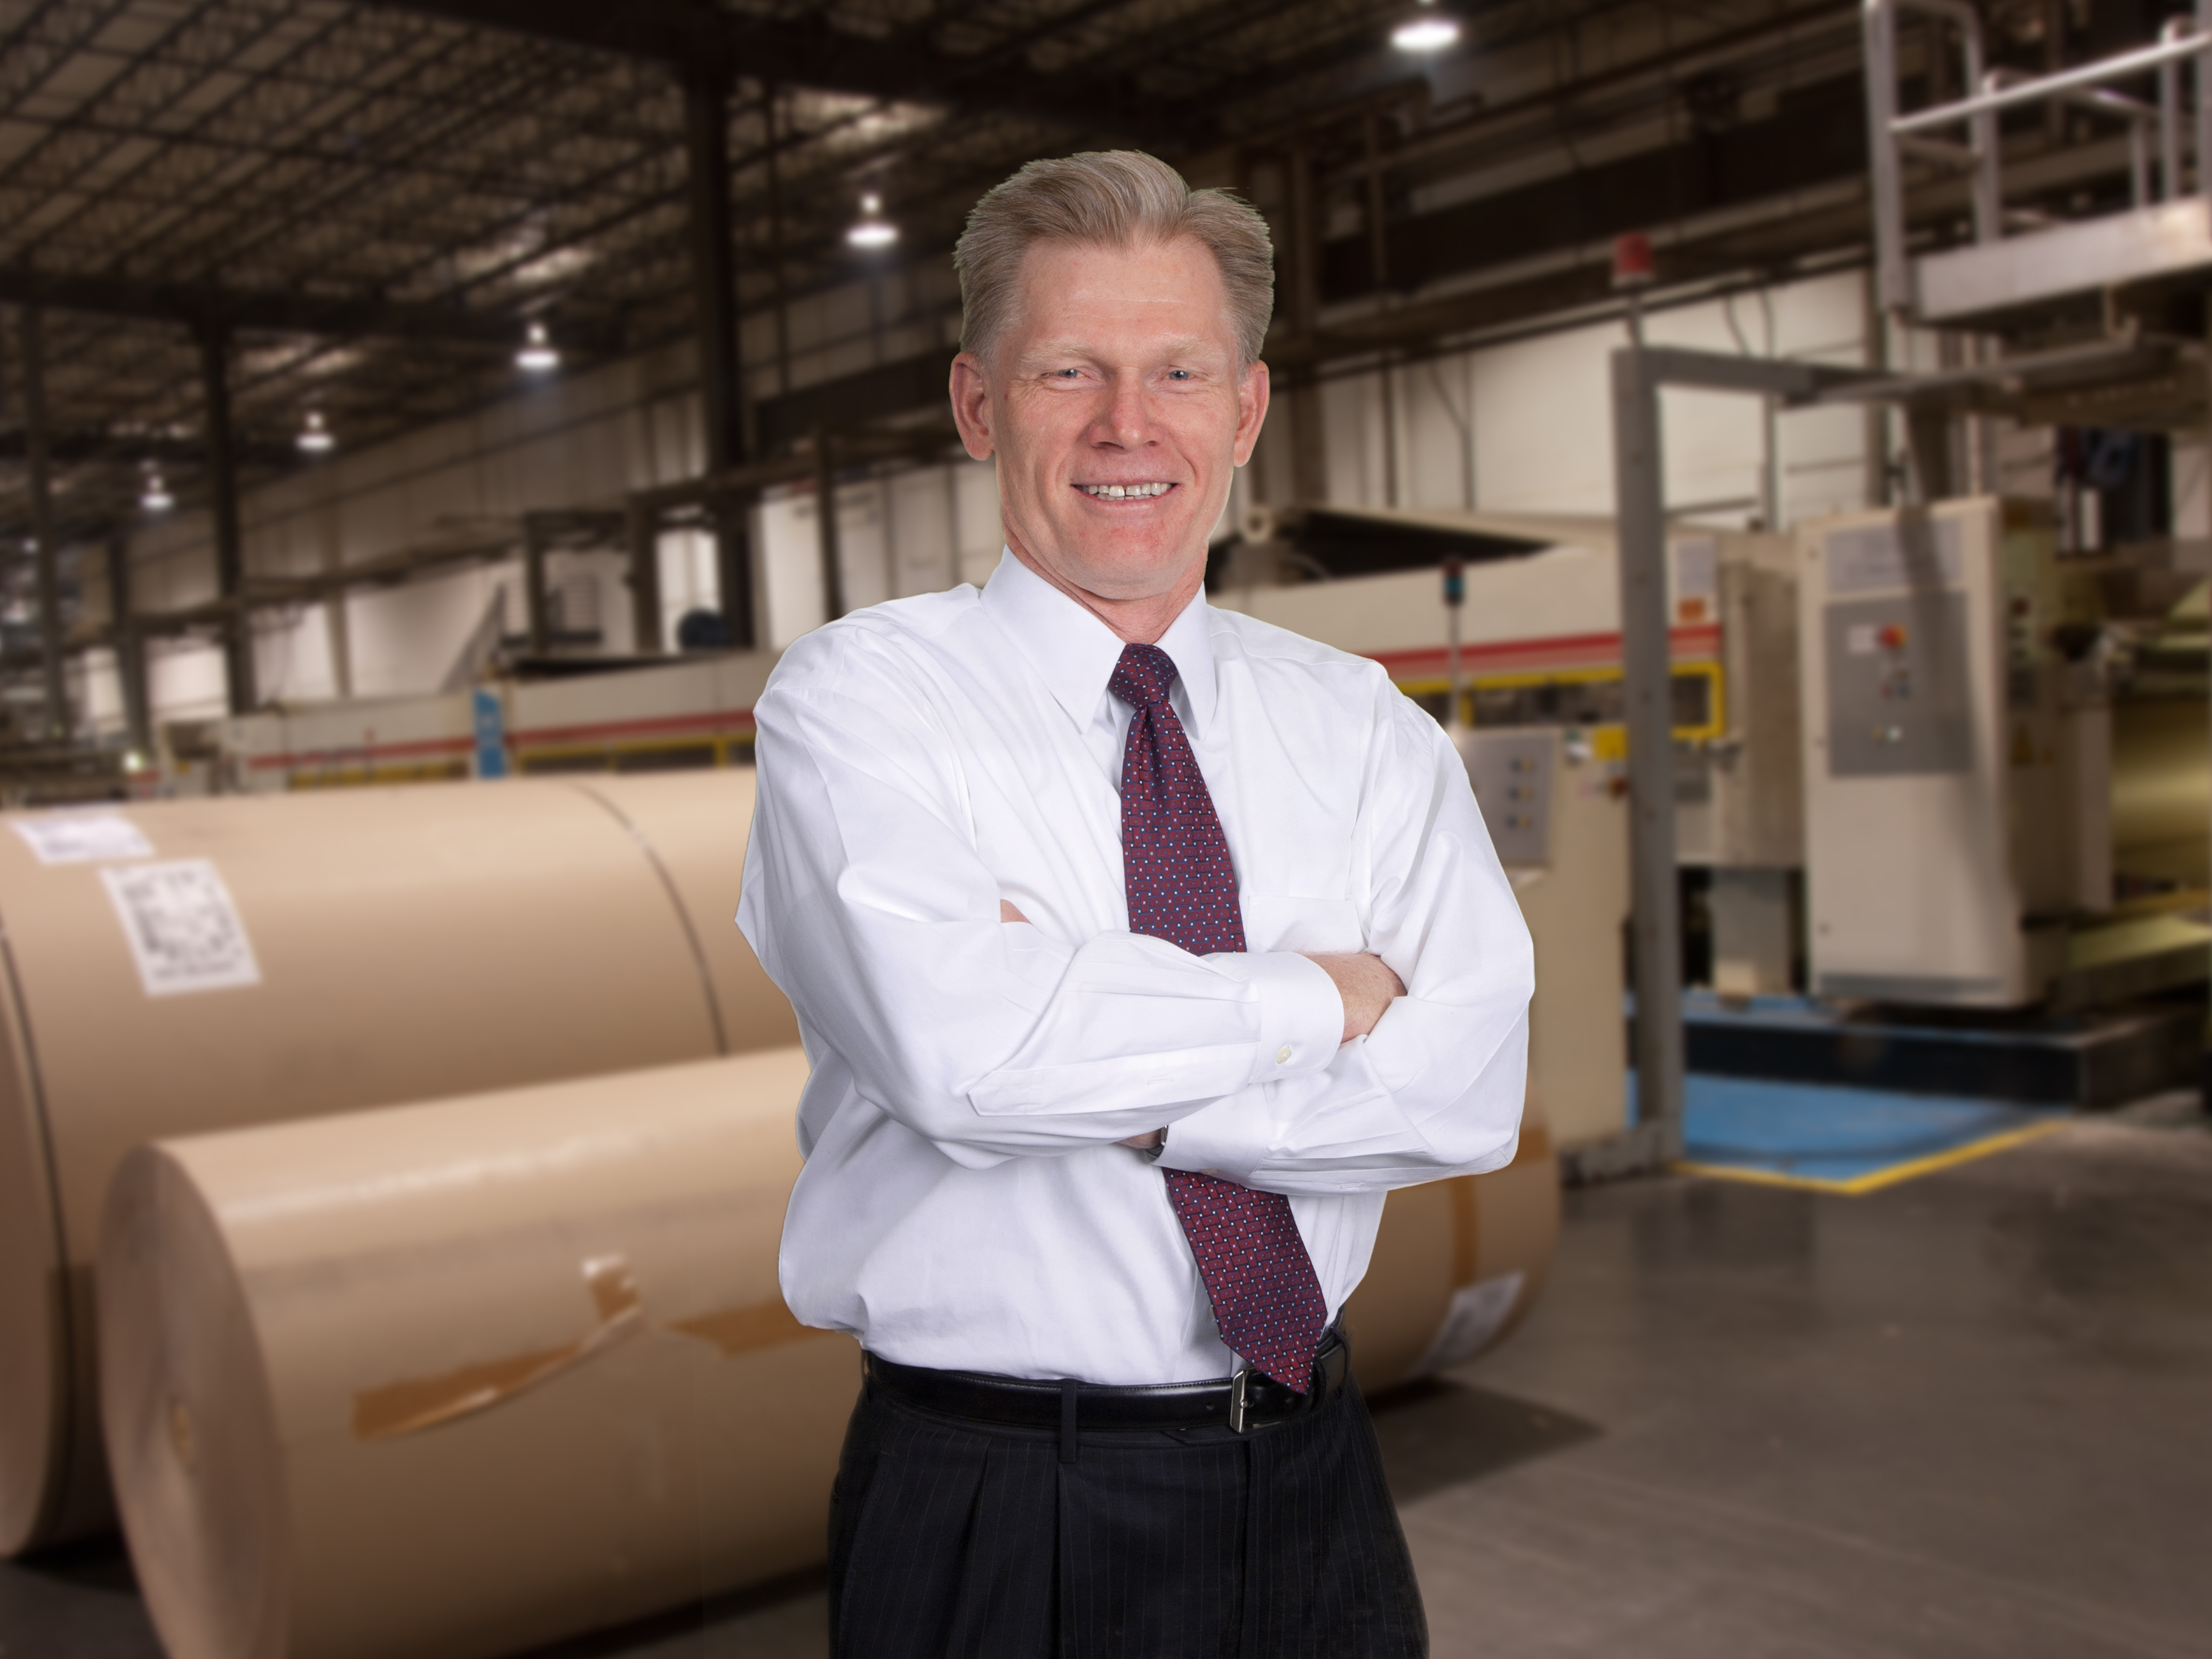 Pratt Industries' Chief Executive Officer, Brian McPheeley